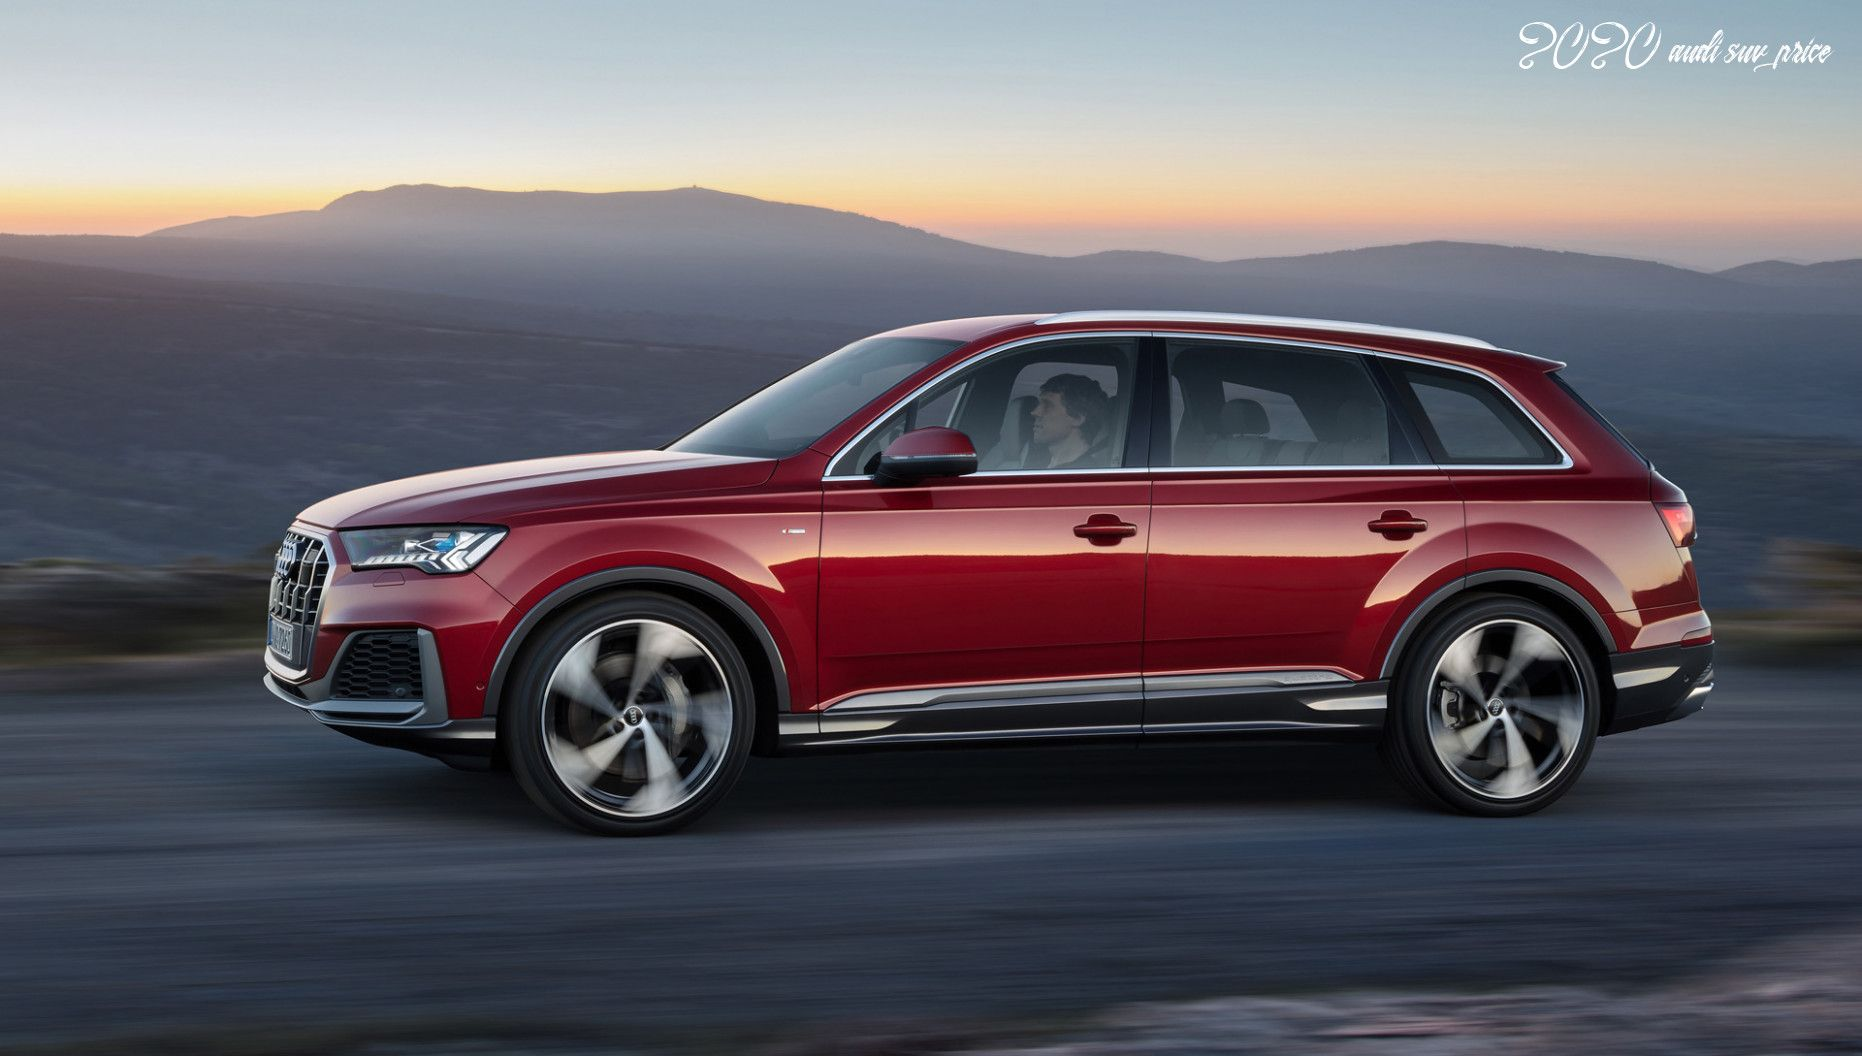 2020 Audi Suv Price Redesign And Concept In 2020 Suv Audi Q7 Price Audi Q7